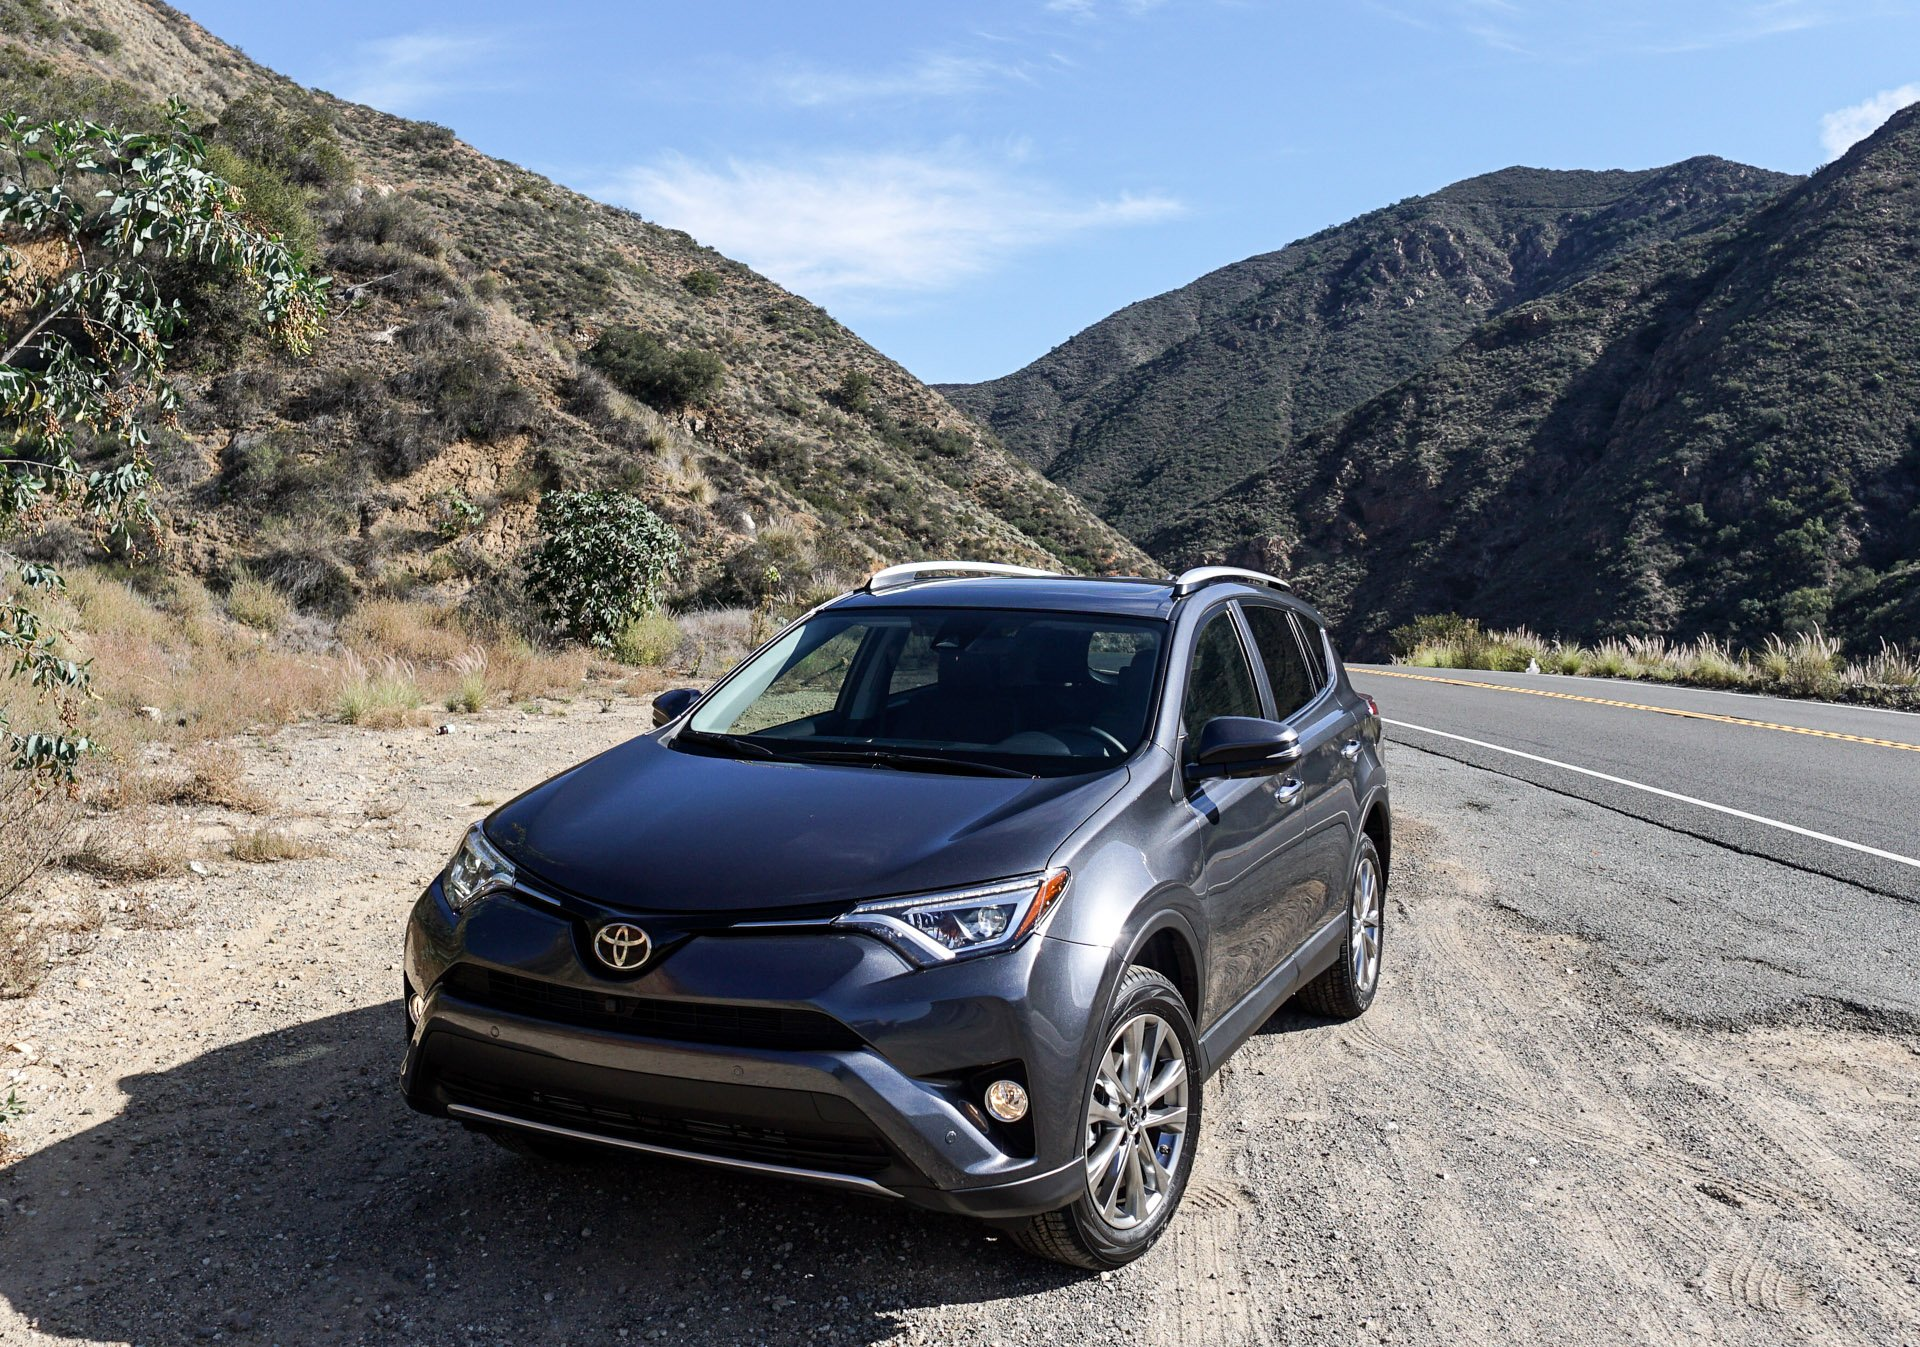 first drive review 2016 toyota rav4 hybrid and rav4 se 95 octane. Black Bedroom Furniture Sets. Home Design Ideas